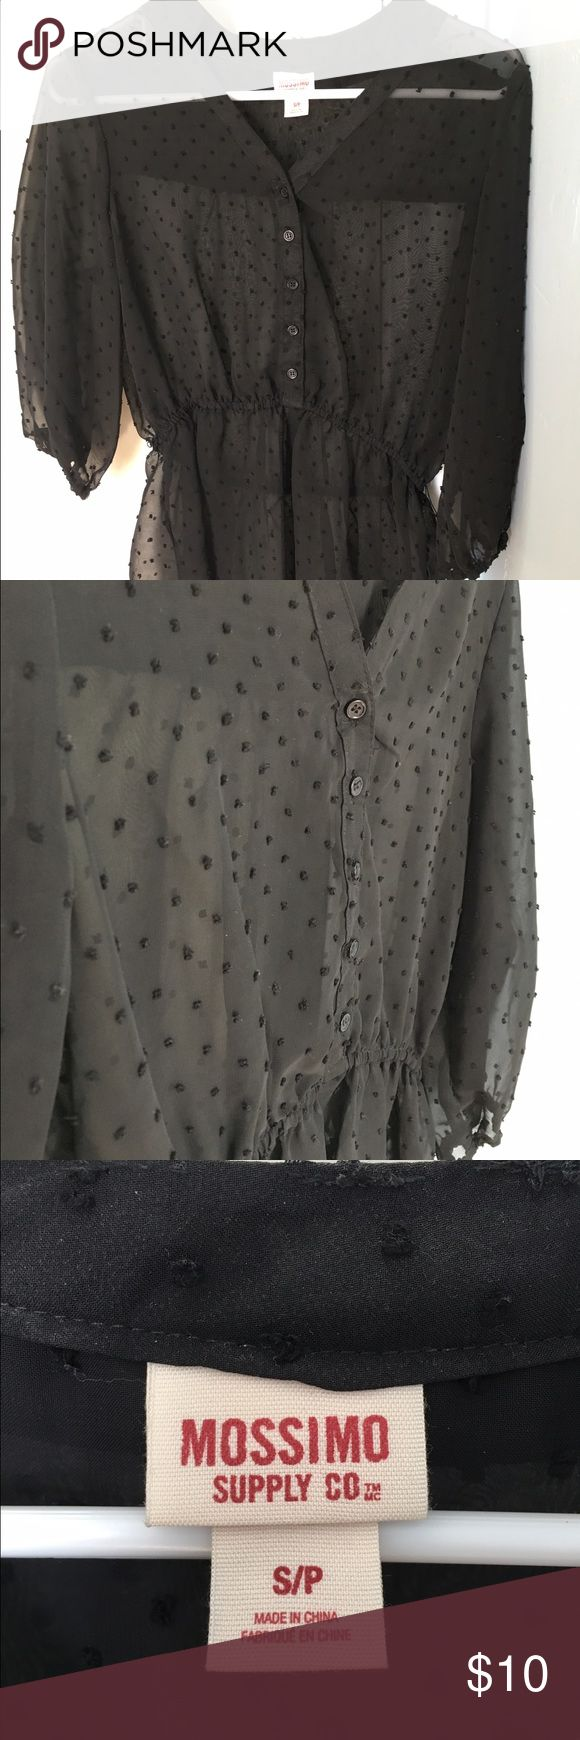 NWOT Mossimo Supply Co Black Swiss Dot Blouse Mossimo Supply Co Black Swiss Dot Blouse. Size Small. Elastic Waist. 100% Polyester. Mossimo Supply Co Tops Blouses